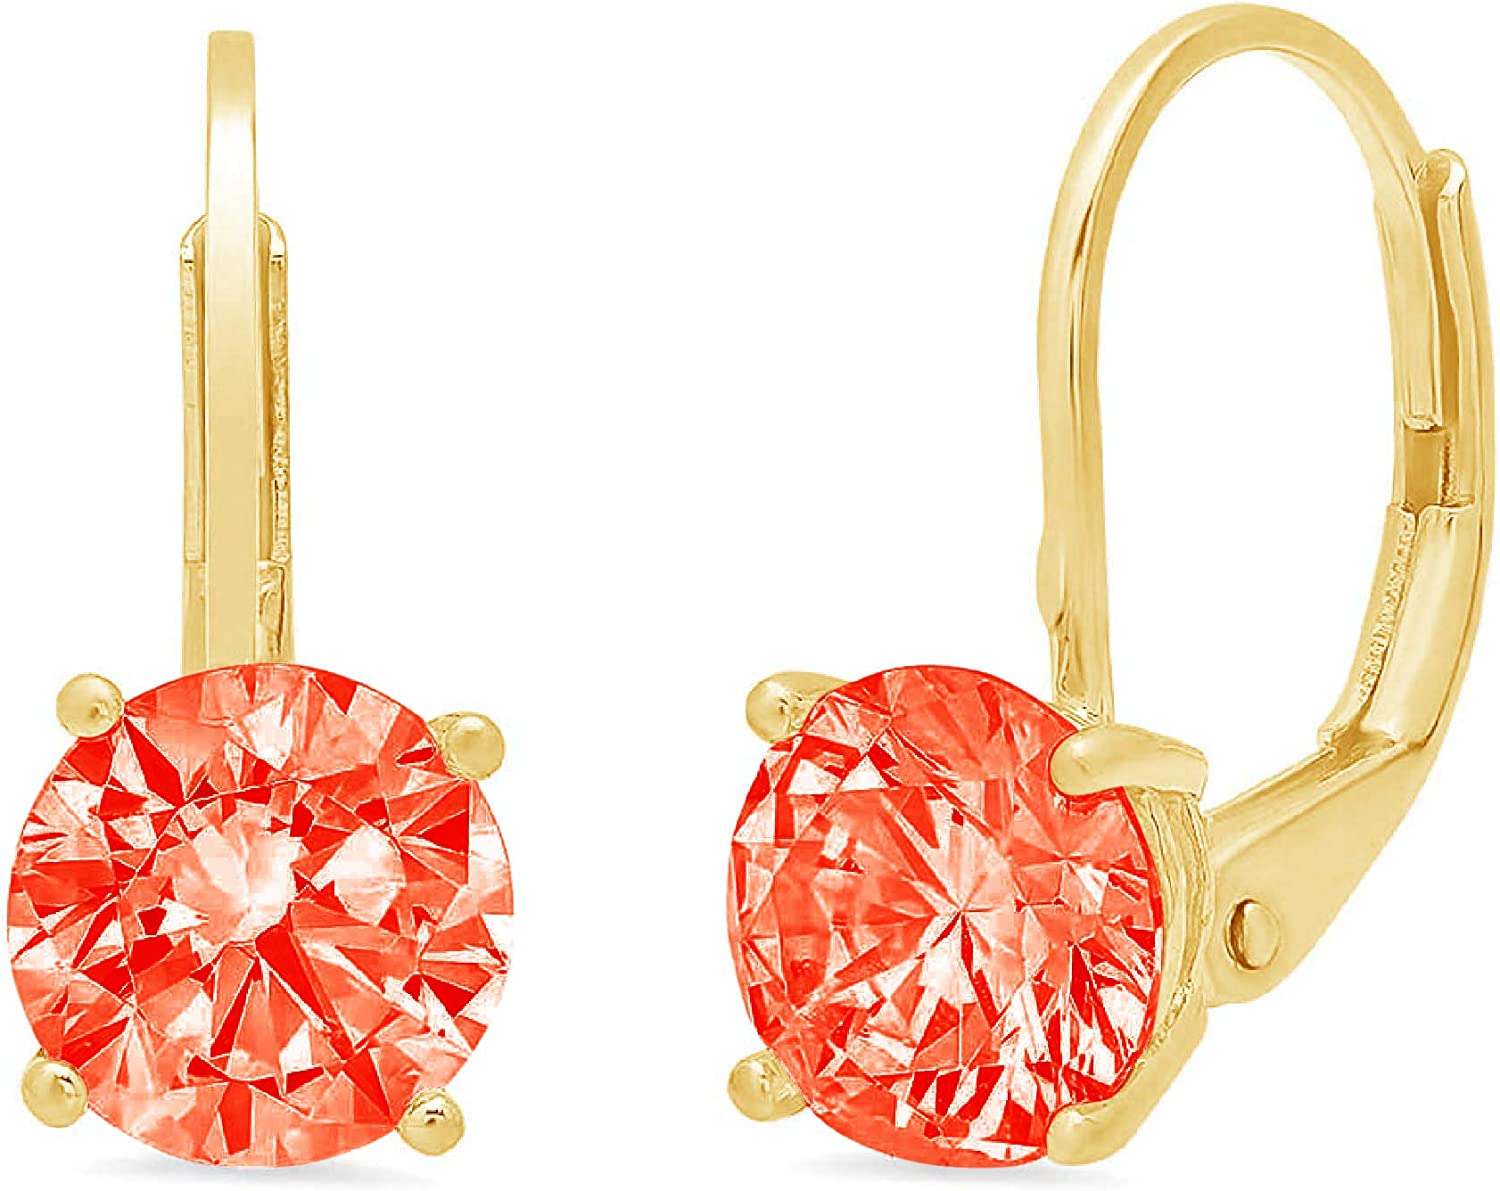 0.94cttw Round Cut ideal VVS1 Conflict Free Gemstone Solitaire Genuine Red CZ Unisex Designer Lever back Drop Dangle Earrings Solid 14k Yellow Gold